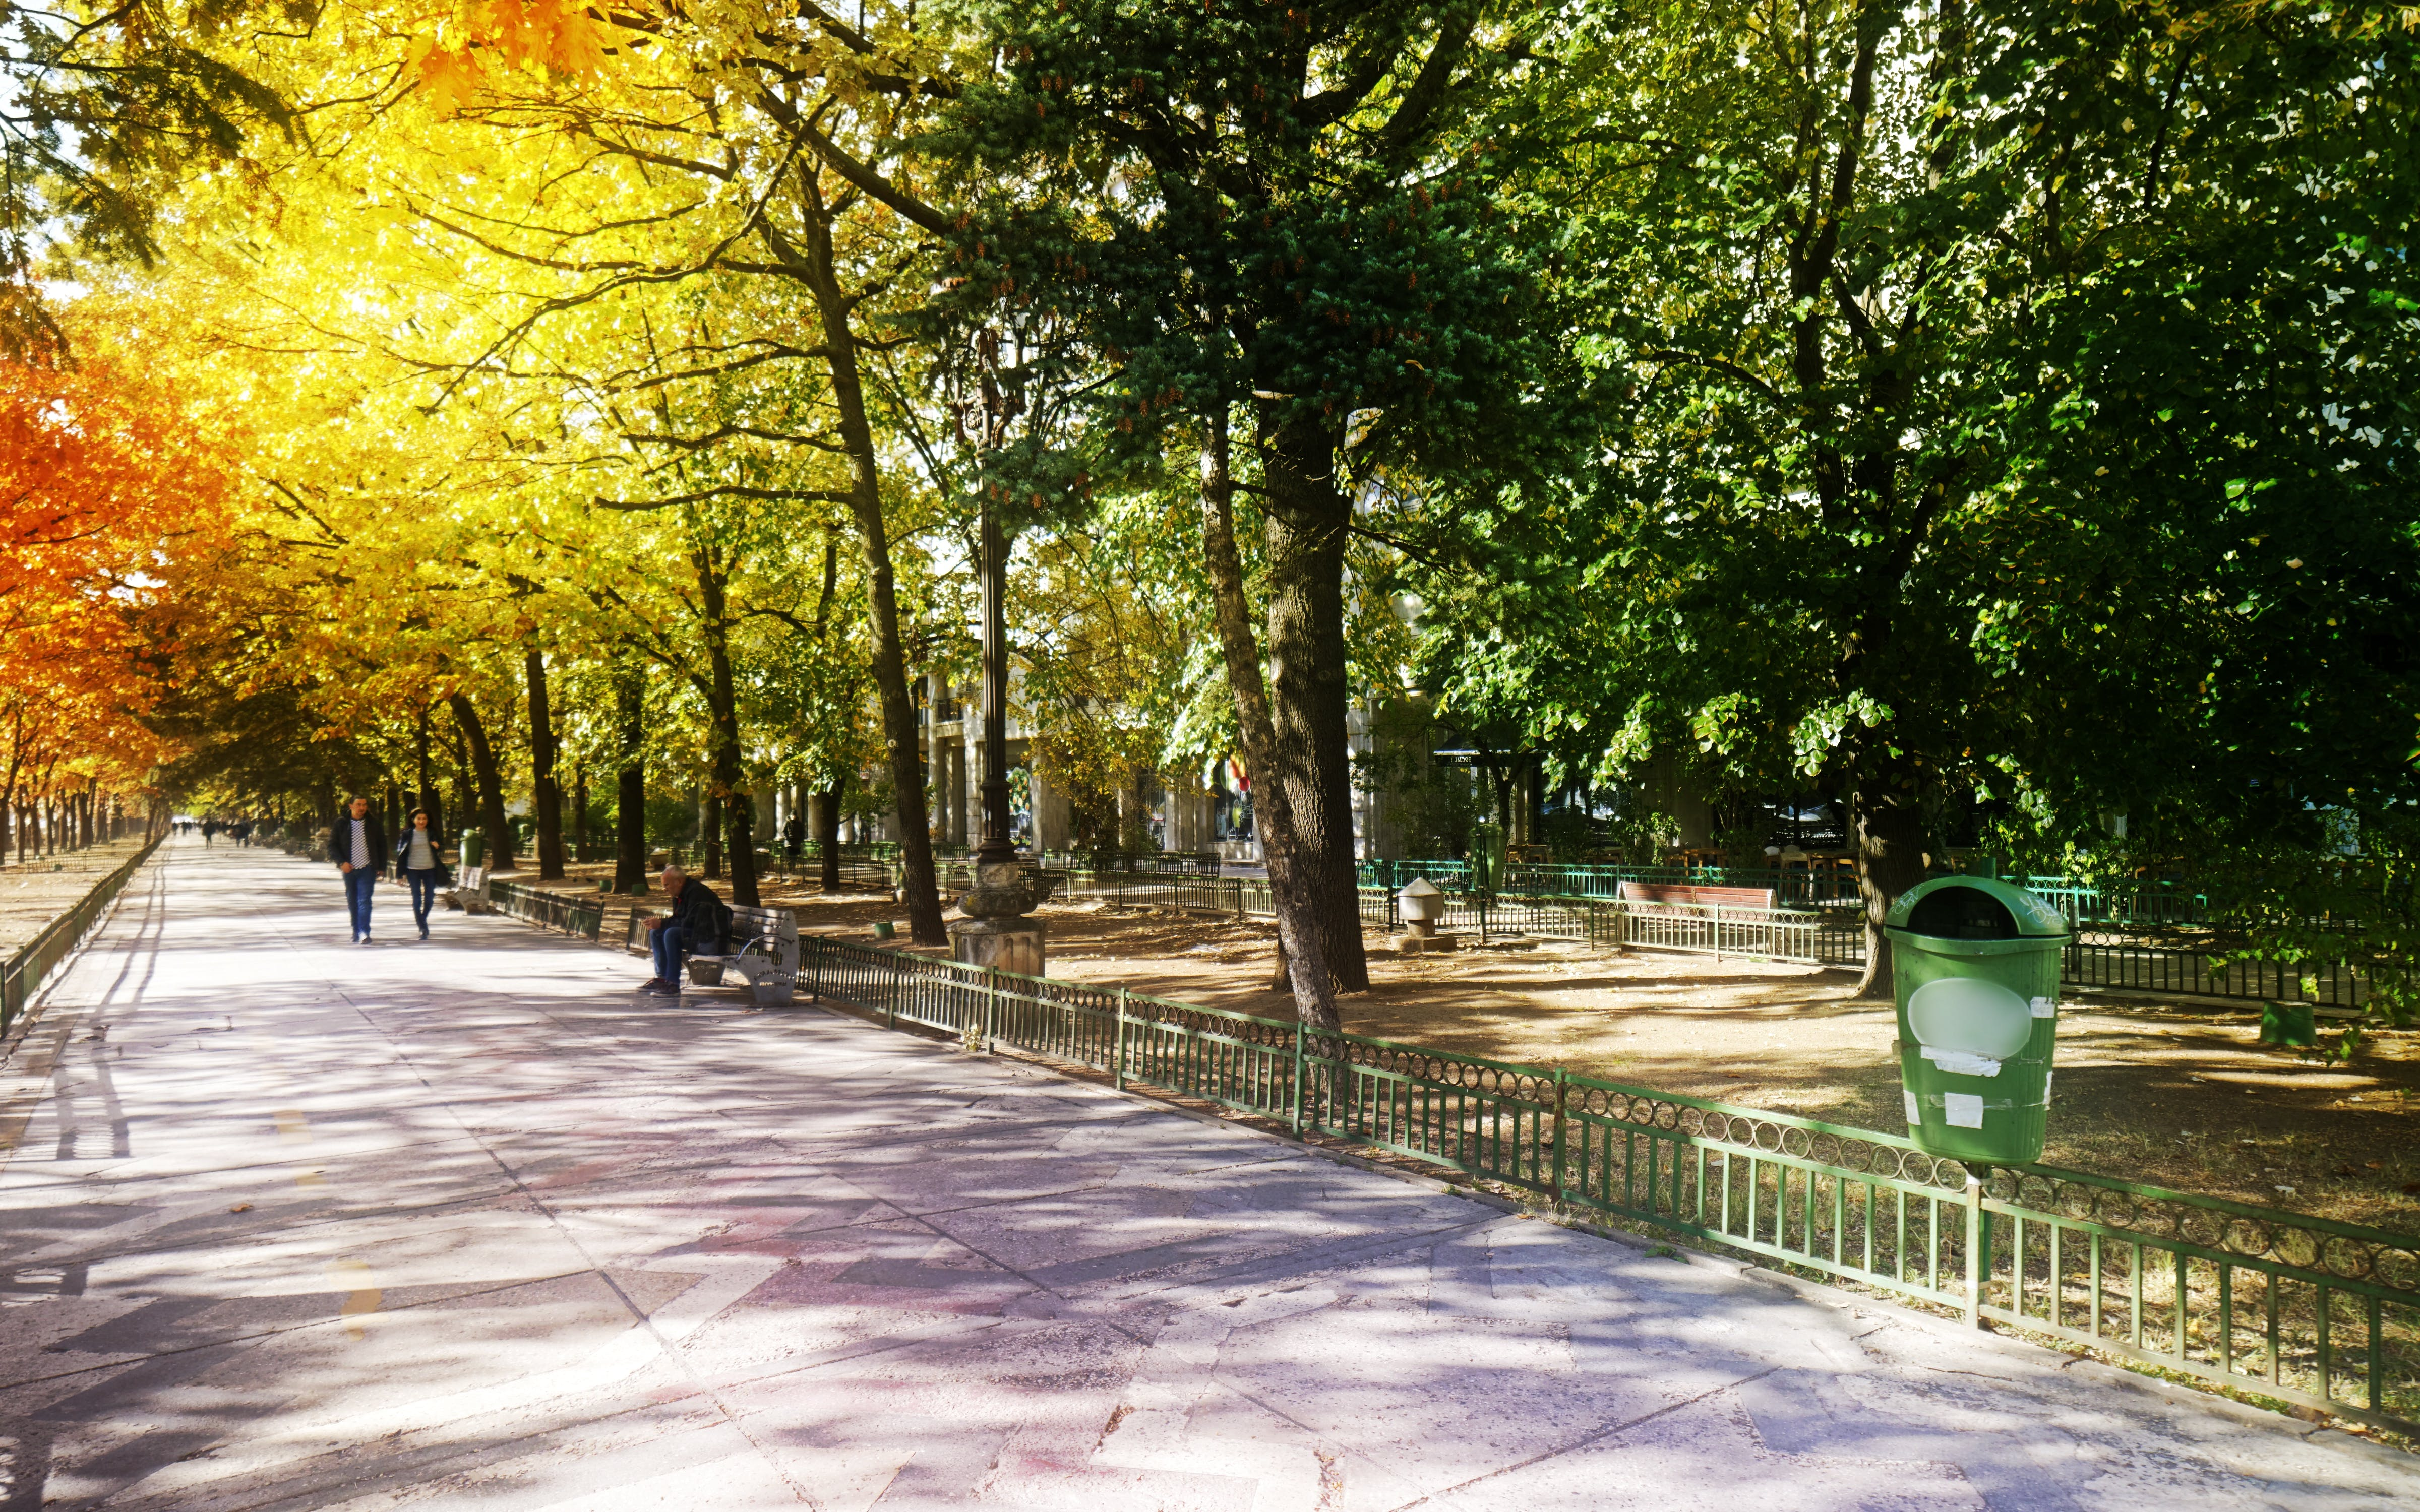 Free stock photo of autumn cityscape, benches, people, trees